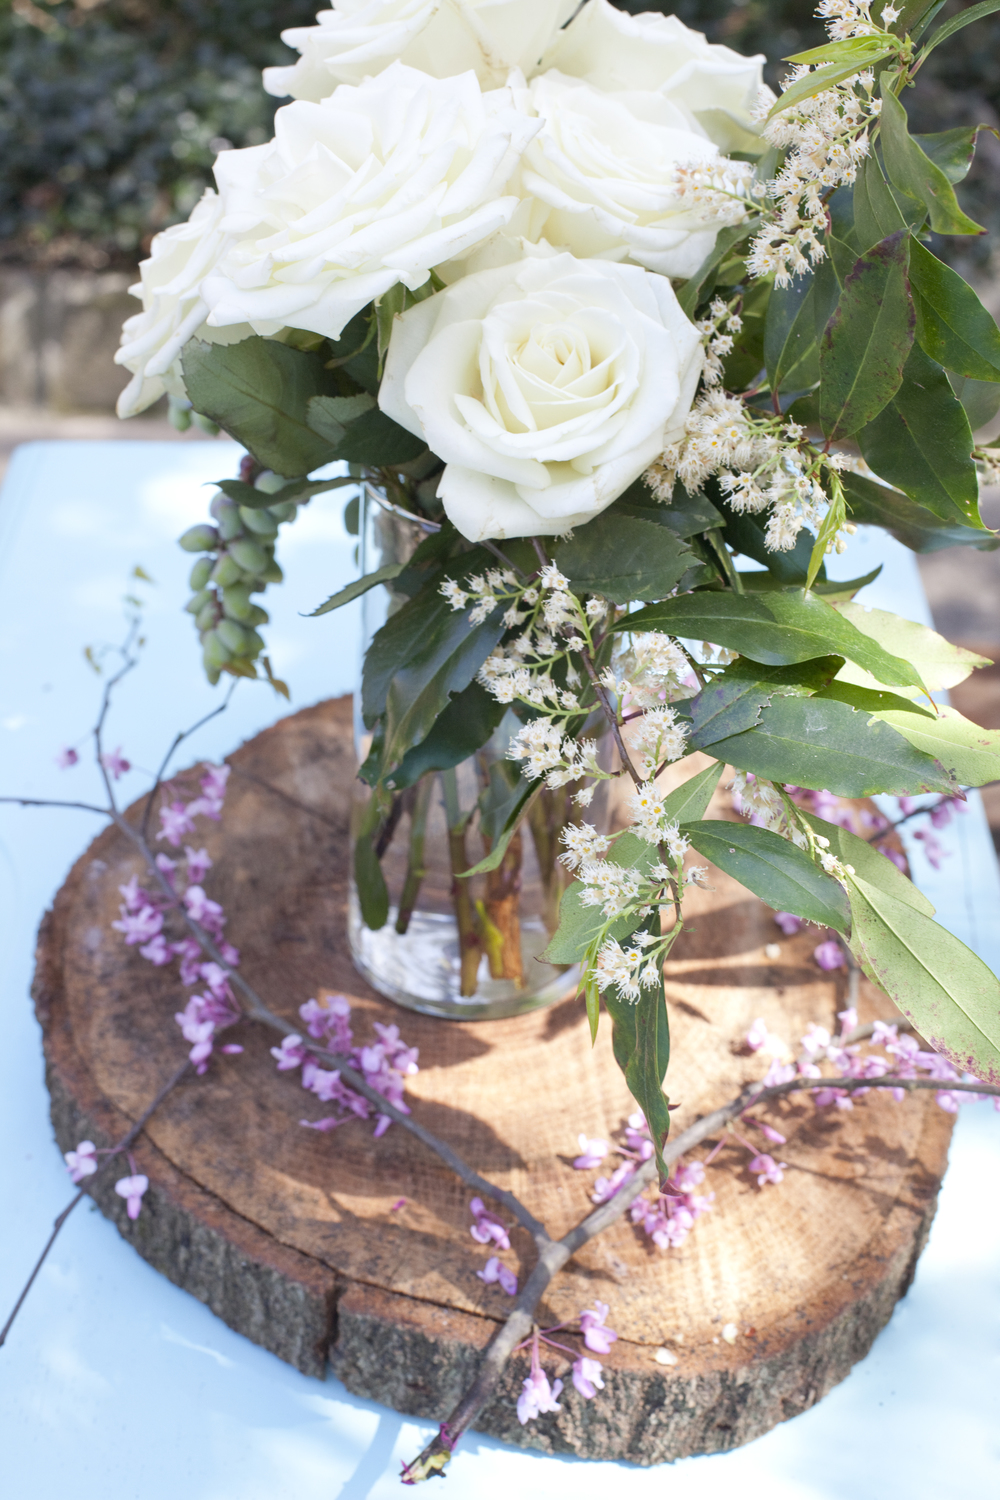 Photo by Christina Wedge, Arrangement by Susie Roupe